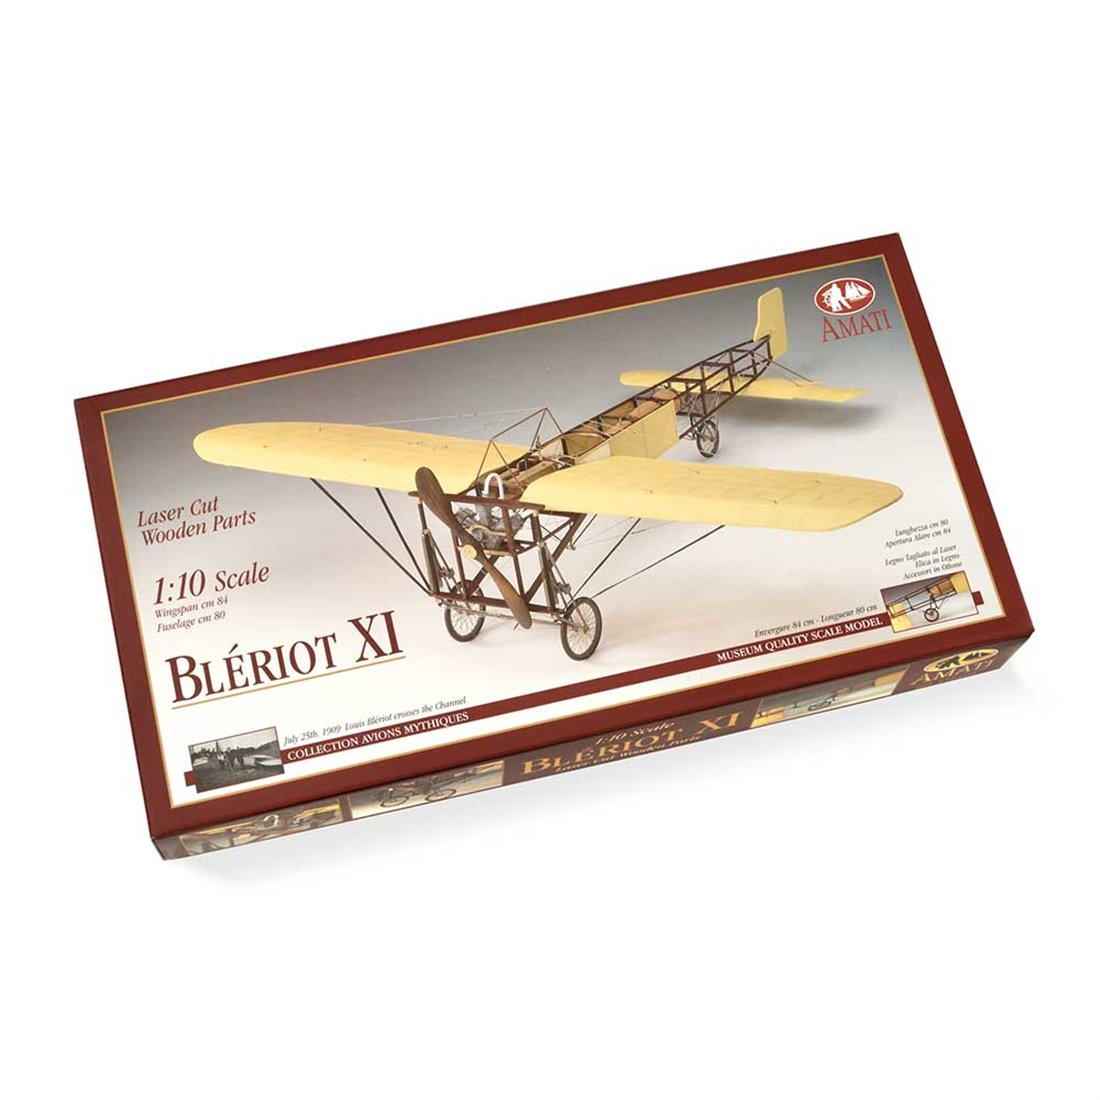 Blériot 1:10